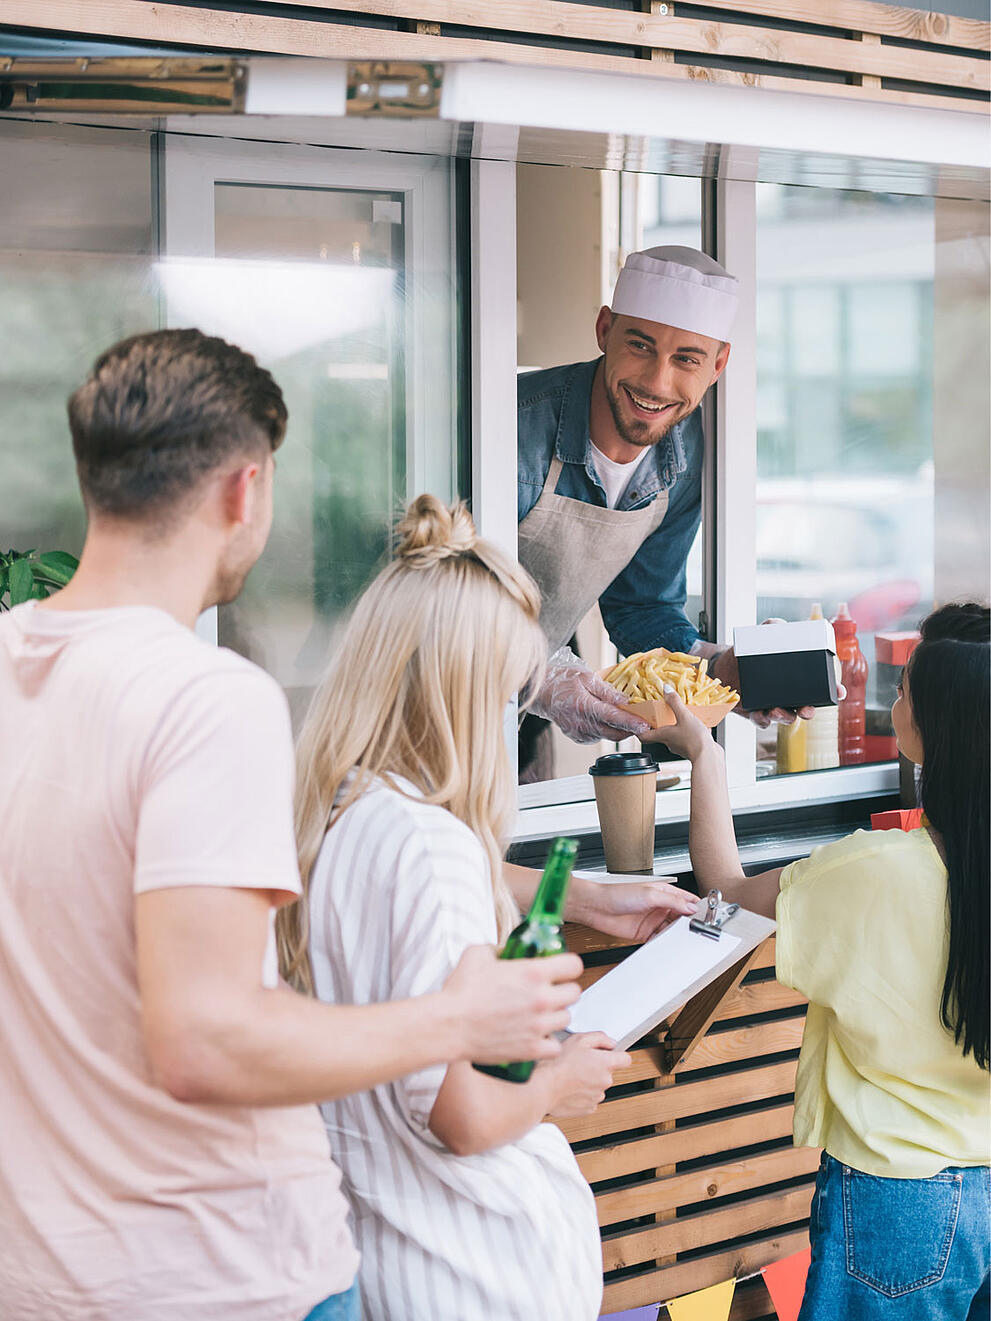 Things To Know When Starting a Food Truck Business